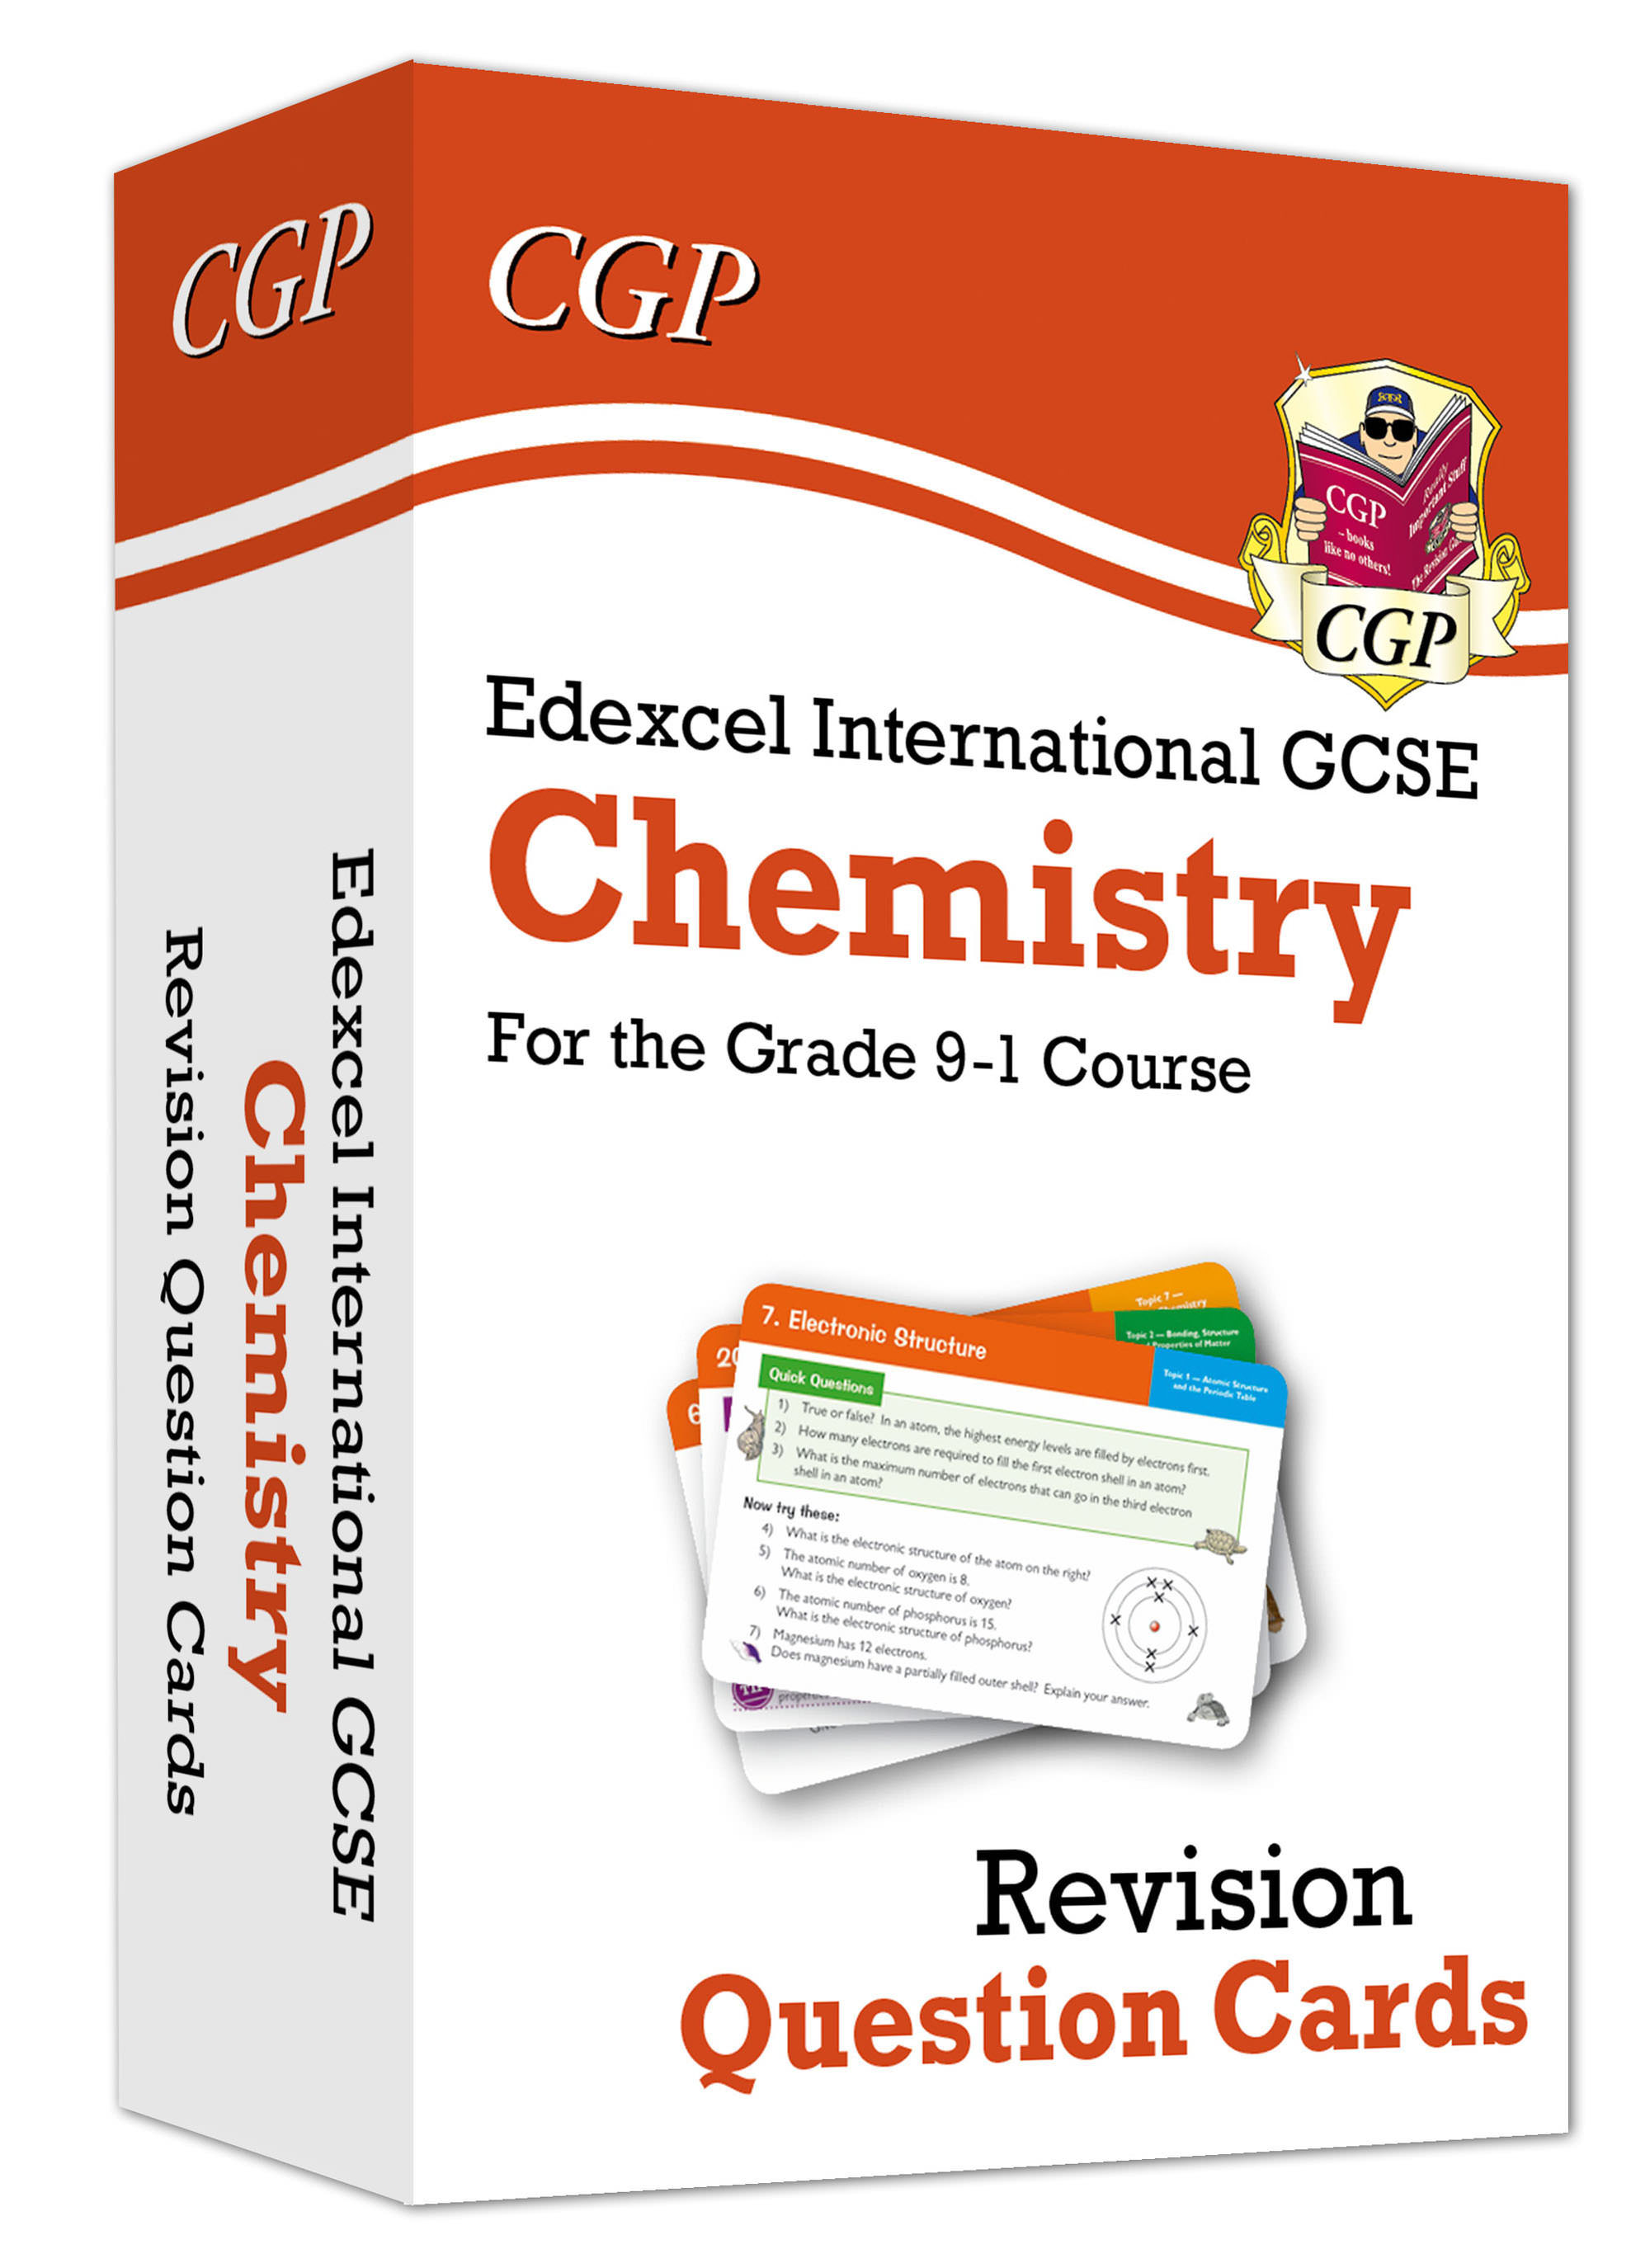 CEFI41DK - New Grade 9-1 Edexcel International GCSE Chemistry: Revision Question Cards